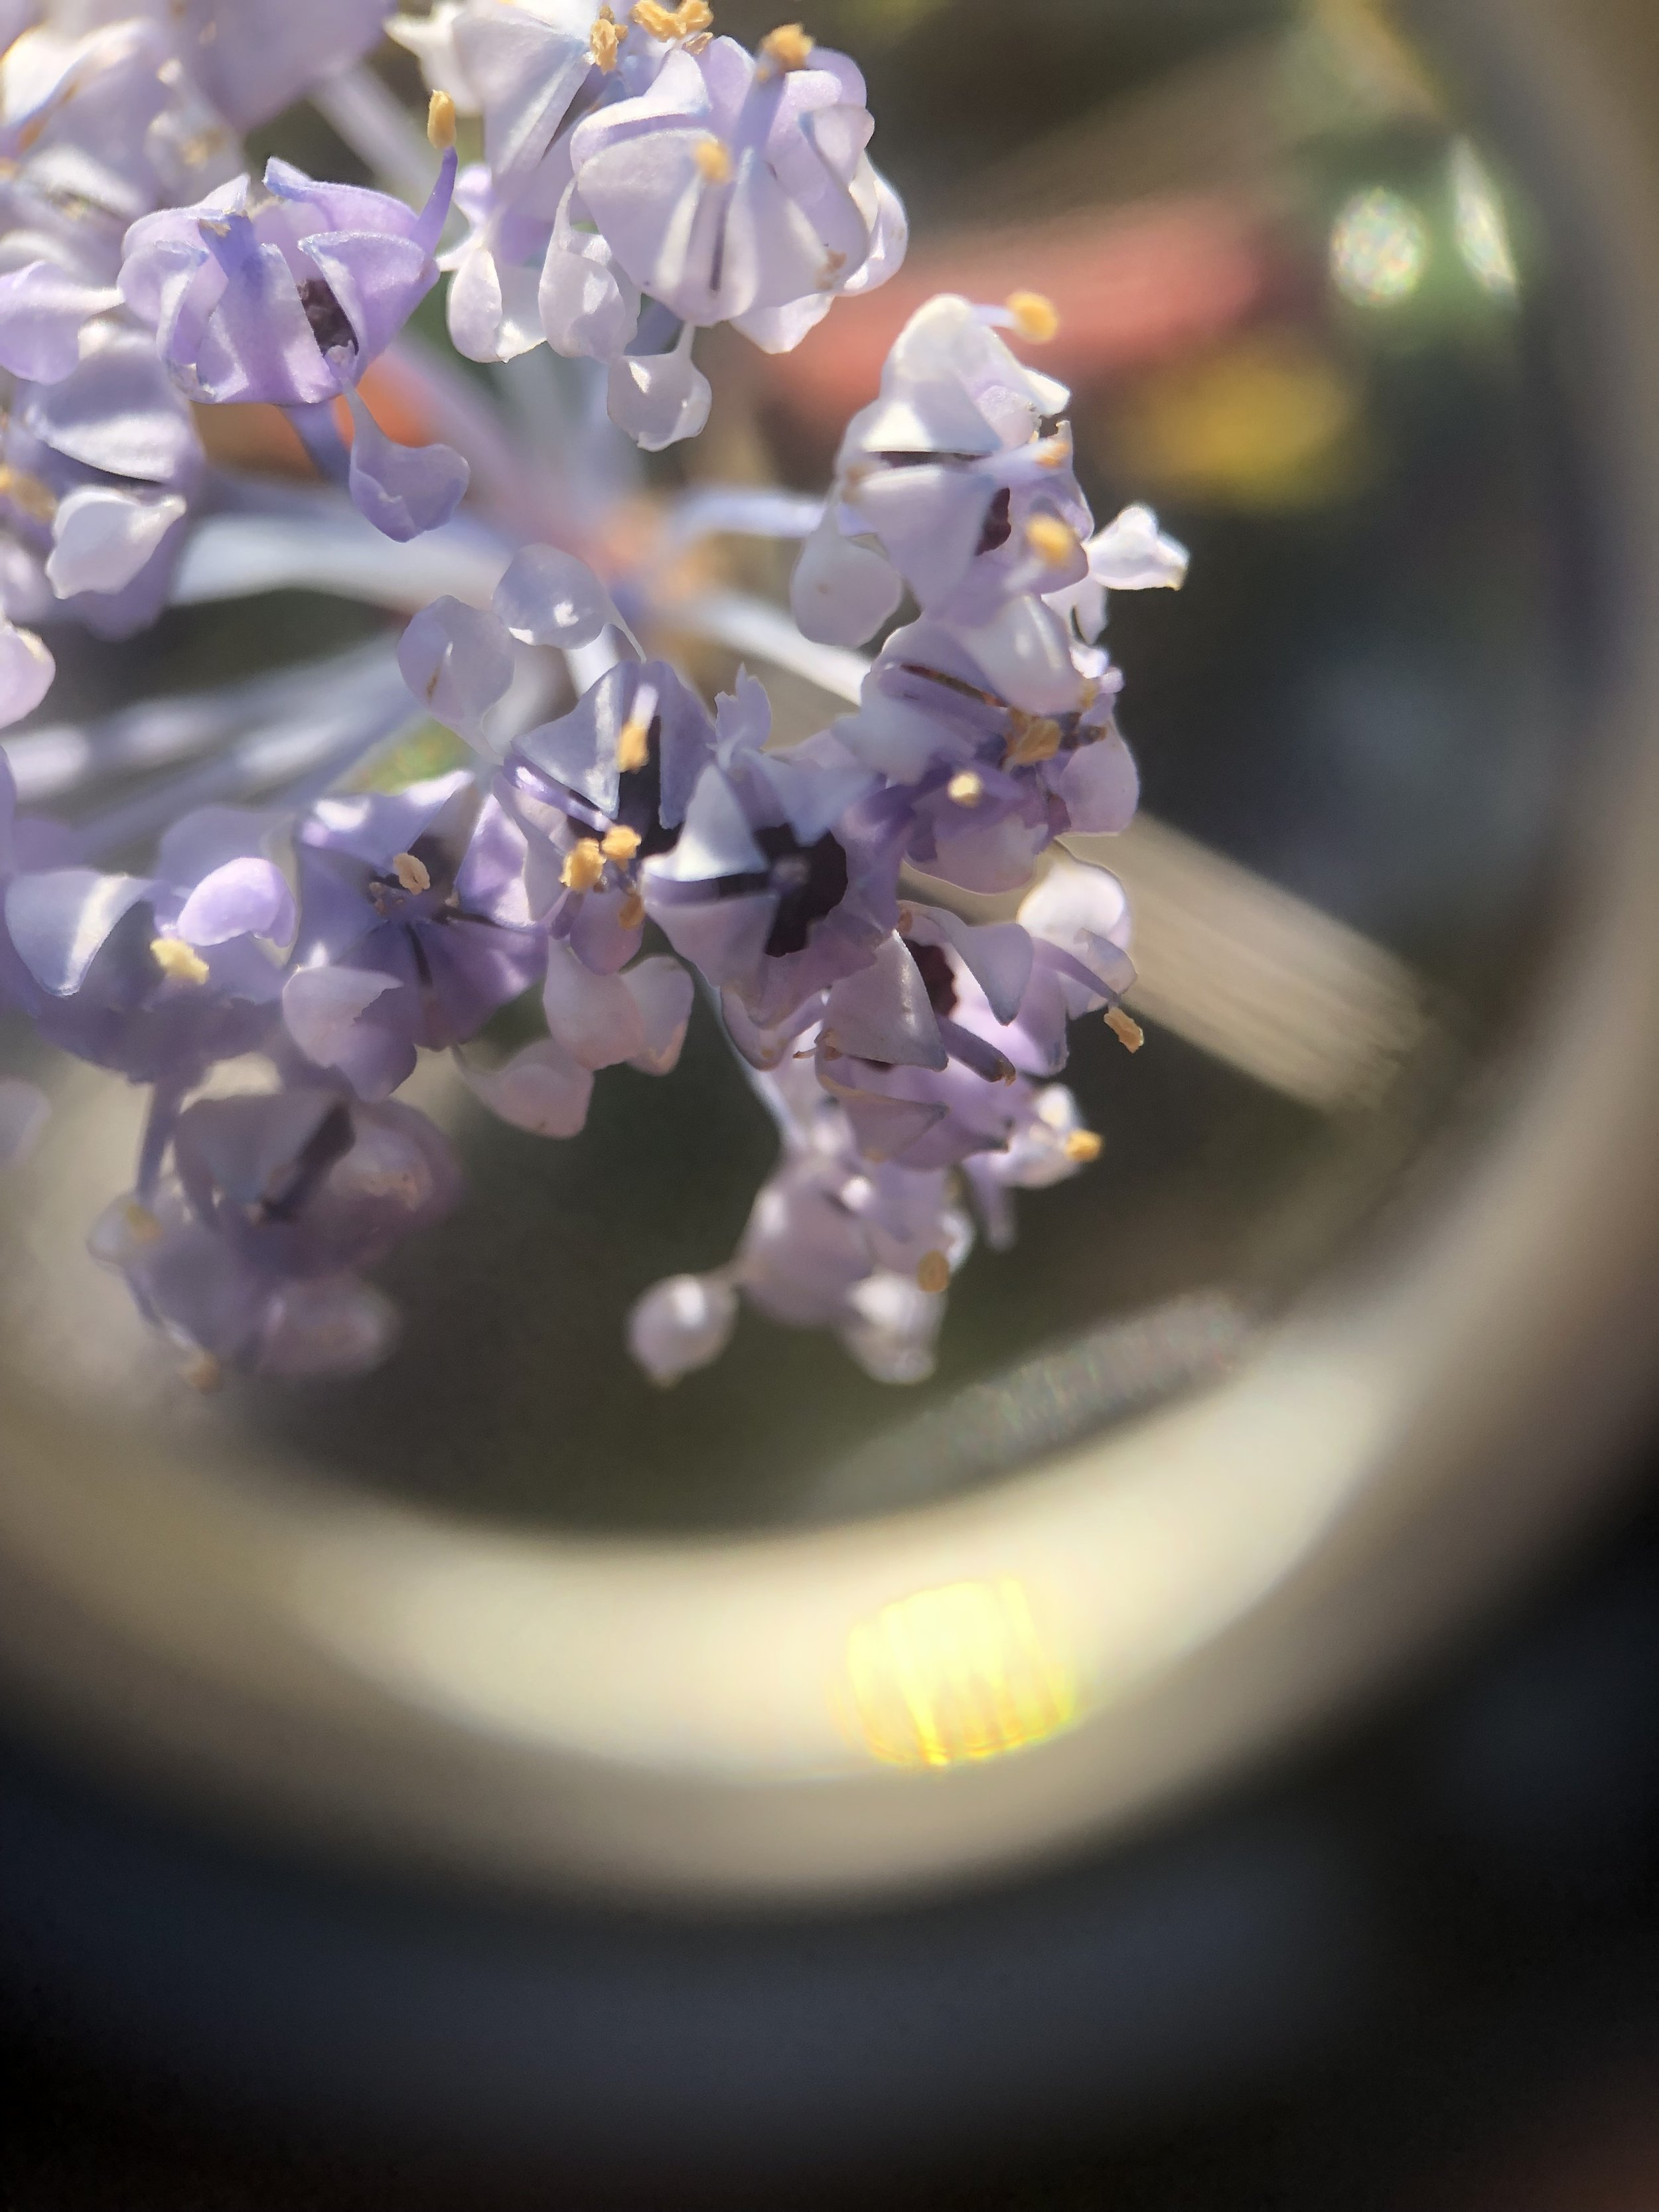 Ceanothus spp. flowers through a loupe up close!. Taken Spring 2019 - Salt Point State Park.